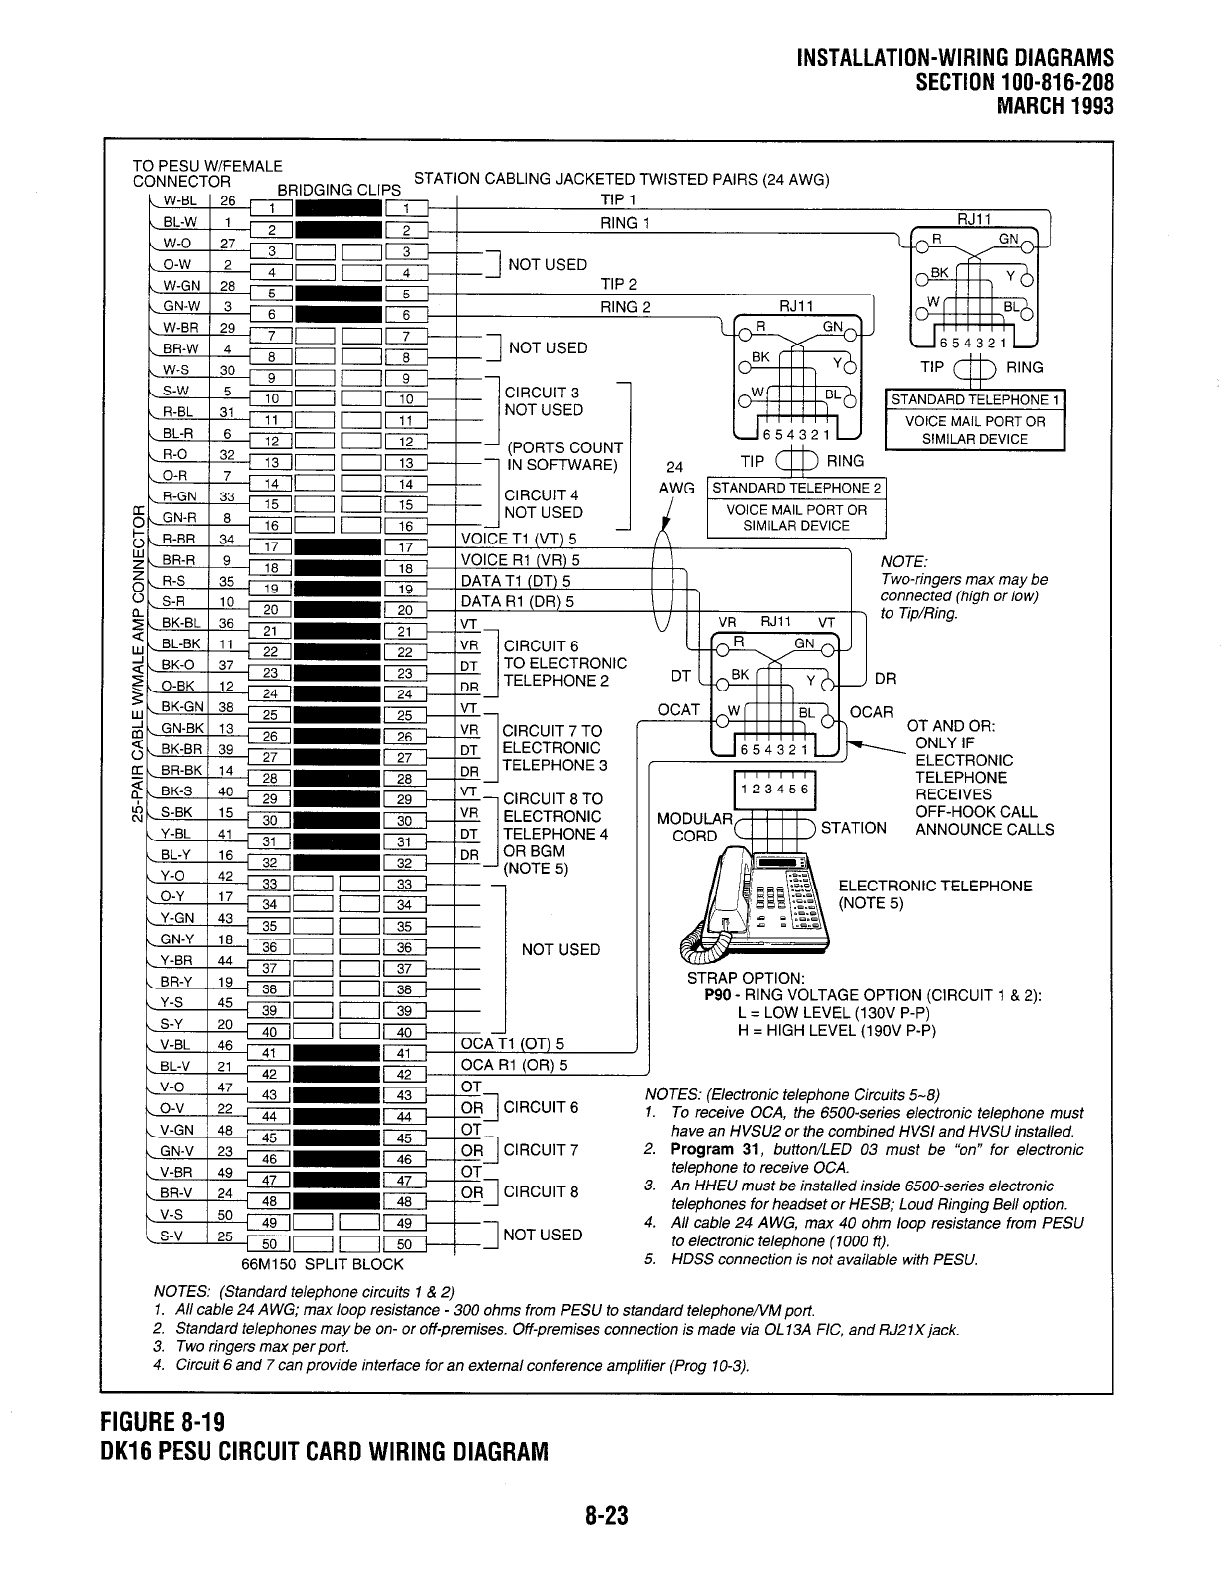 52c30e44 eb3d 42ea a7fe 5e185b64a3b0 bgd9 page 217 of toshiba cell phone strata dk8 user guide Home Phone Wiring Diagram at mr168.co